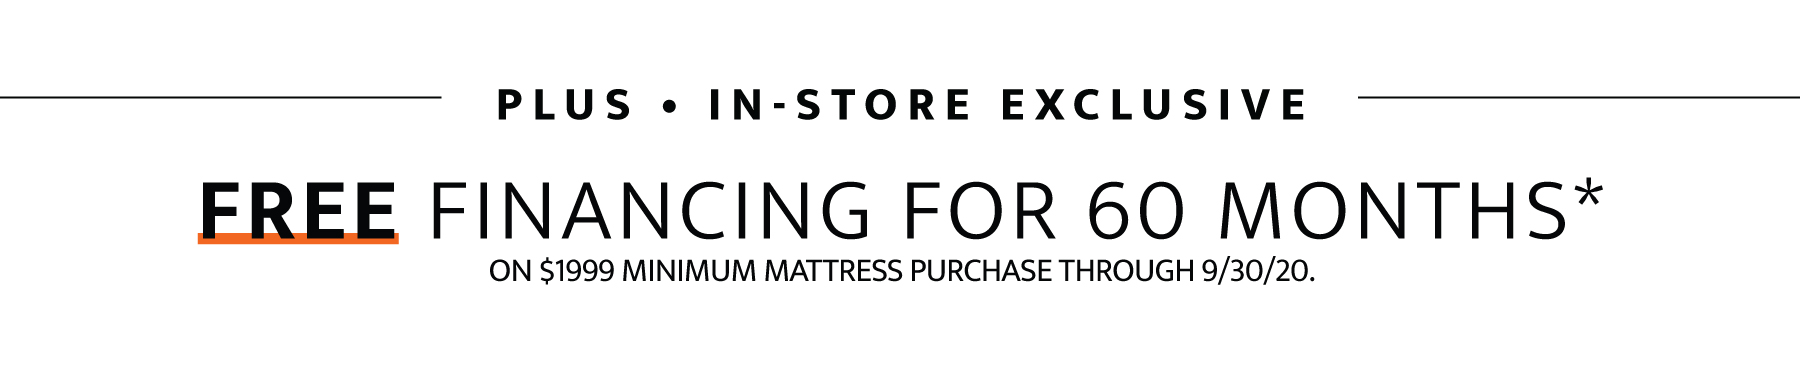 Plus in-store exclusive free financing